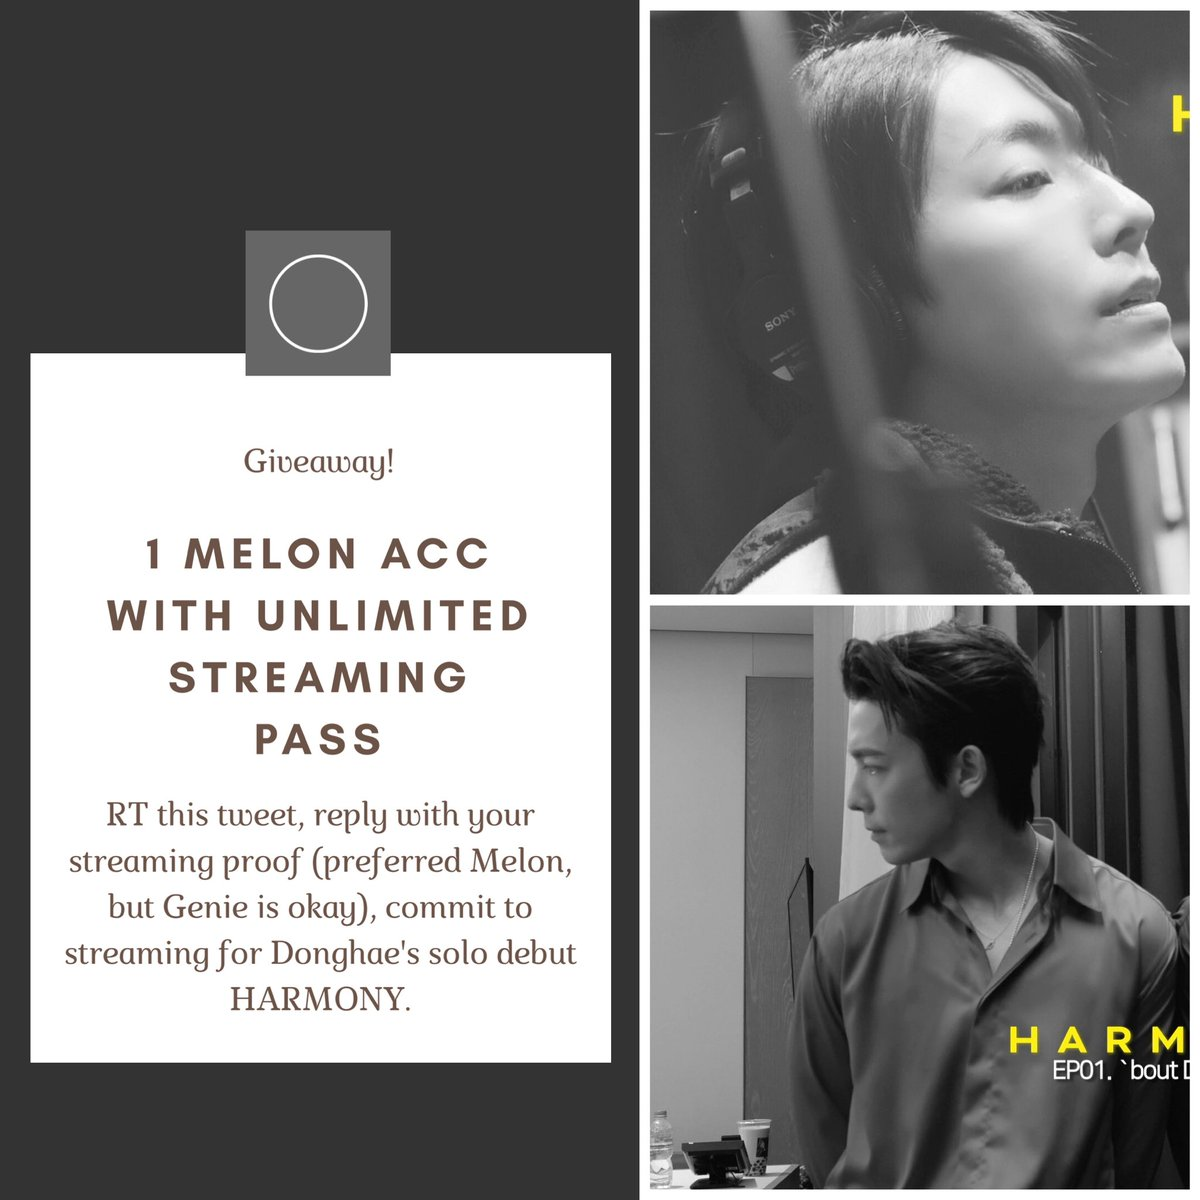 [HELP RT]   GIVEAWAY FOR CELEBRATE DONGHAE'S SOLO DEBUT   People forget to follow the rules in my previous tweets  This Melon acc is for 2 persons. And you can reply with your thread or screenshots from 2YA2YAO's streaming.   DEADLINE: 22 February, 23.59 WIB. <br>http://pic.twitter.com/Qkz5LFz5gZ